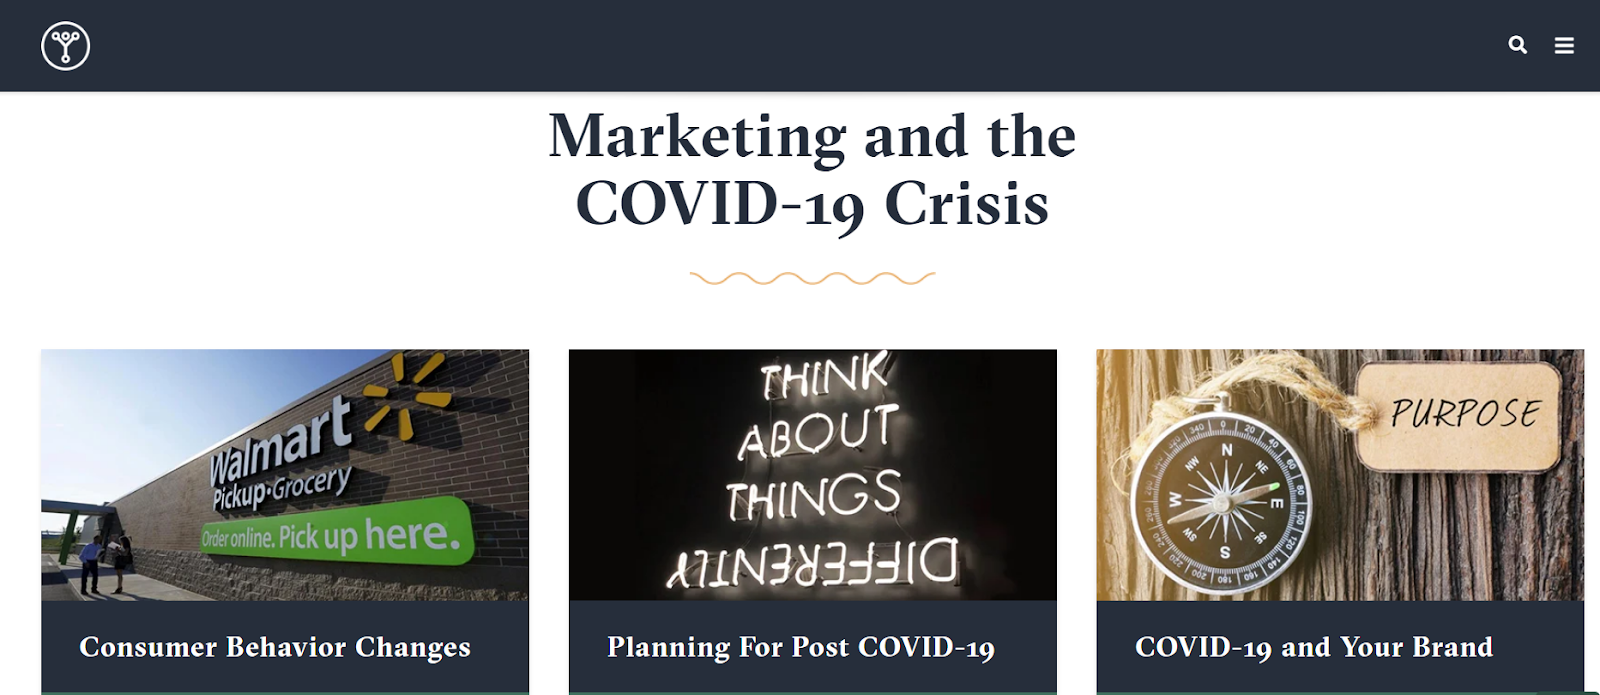 Slingshot - Austin-based Digital Marketing Agency's response to COVID-19